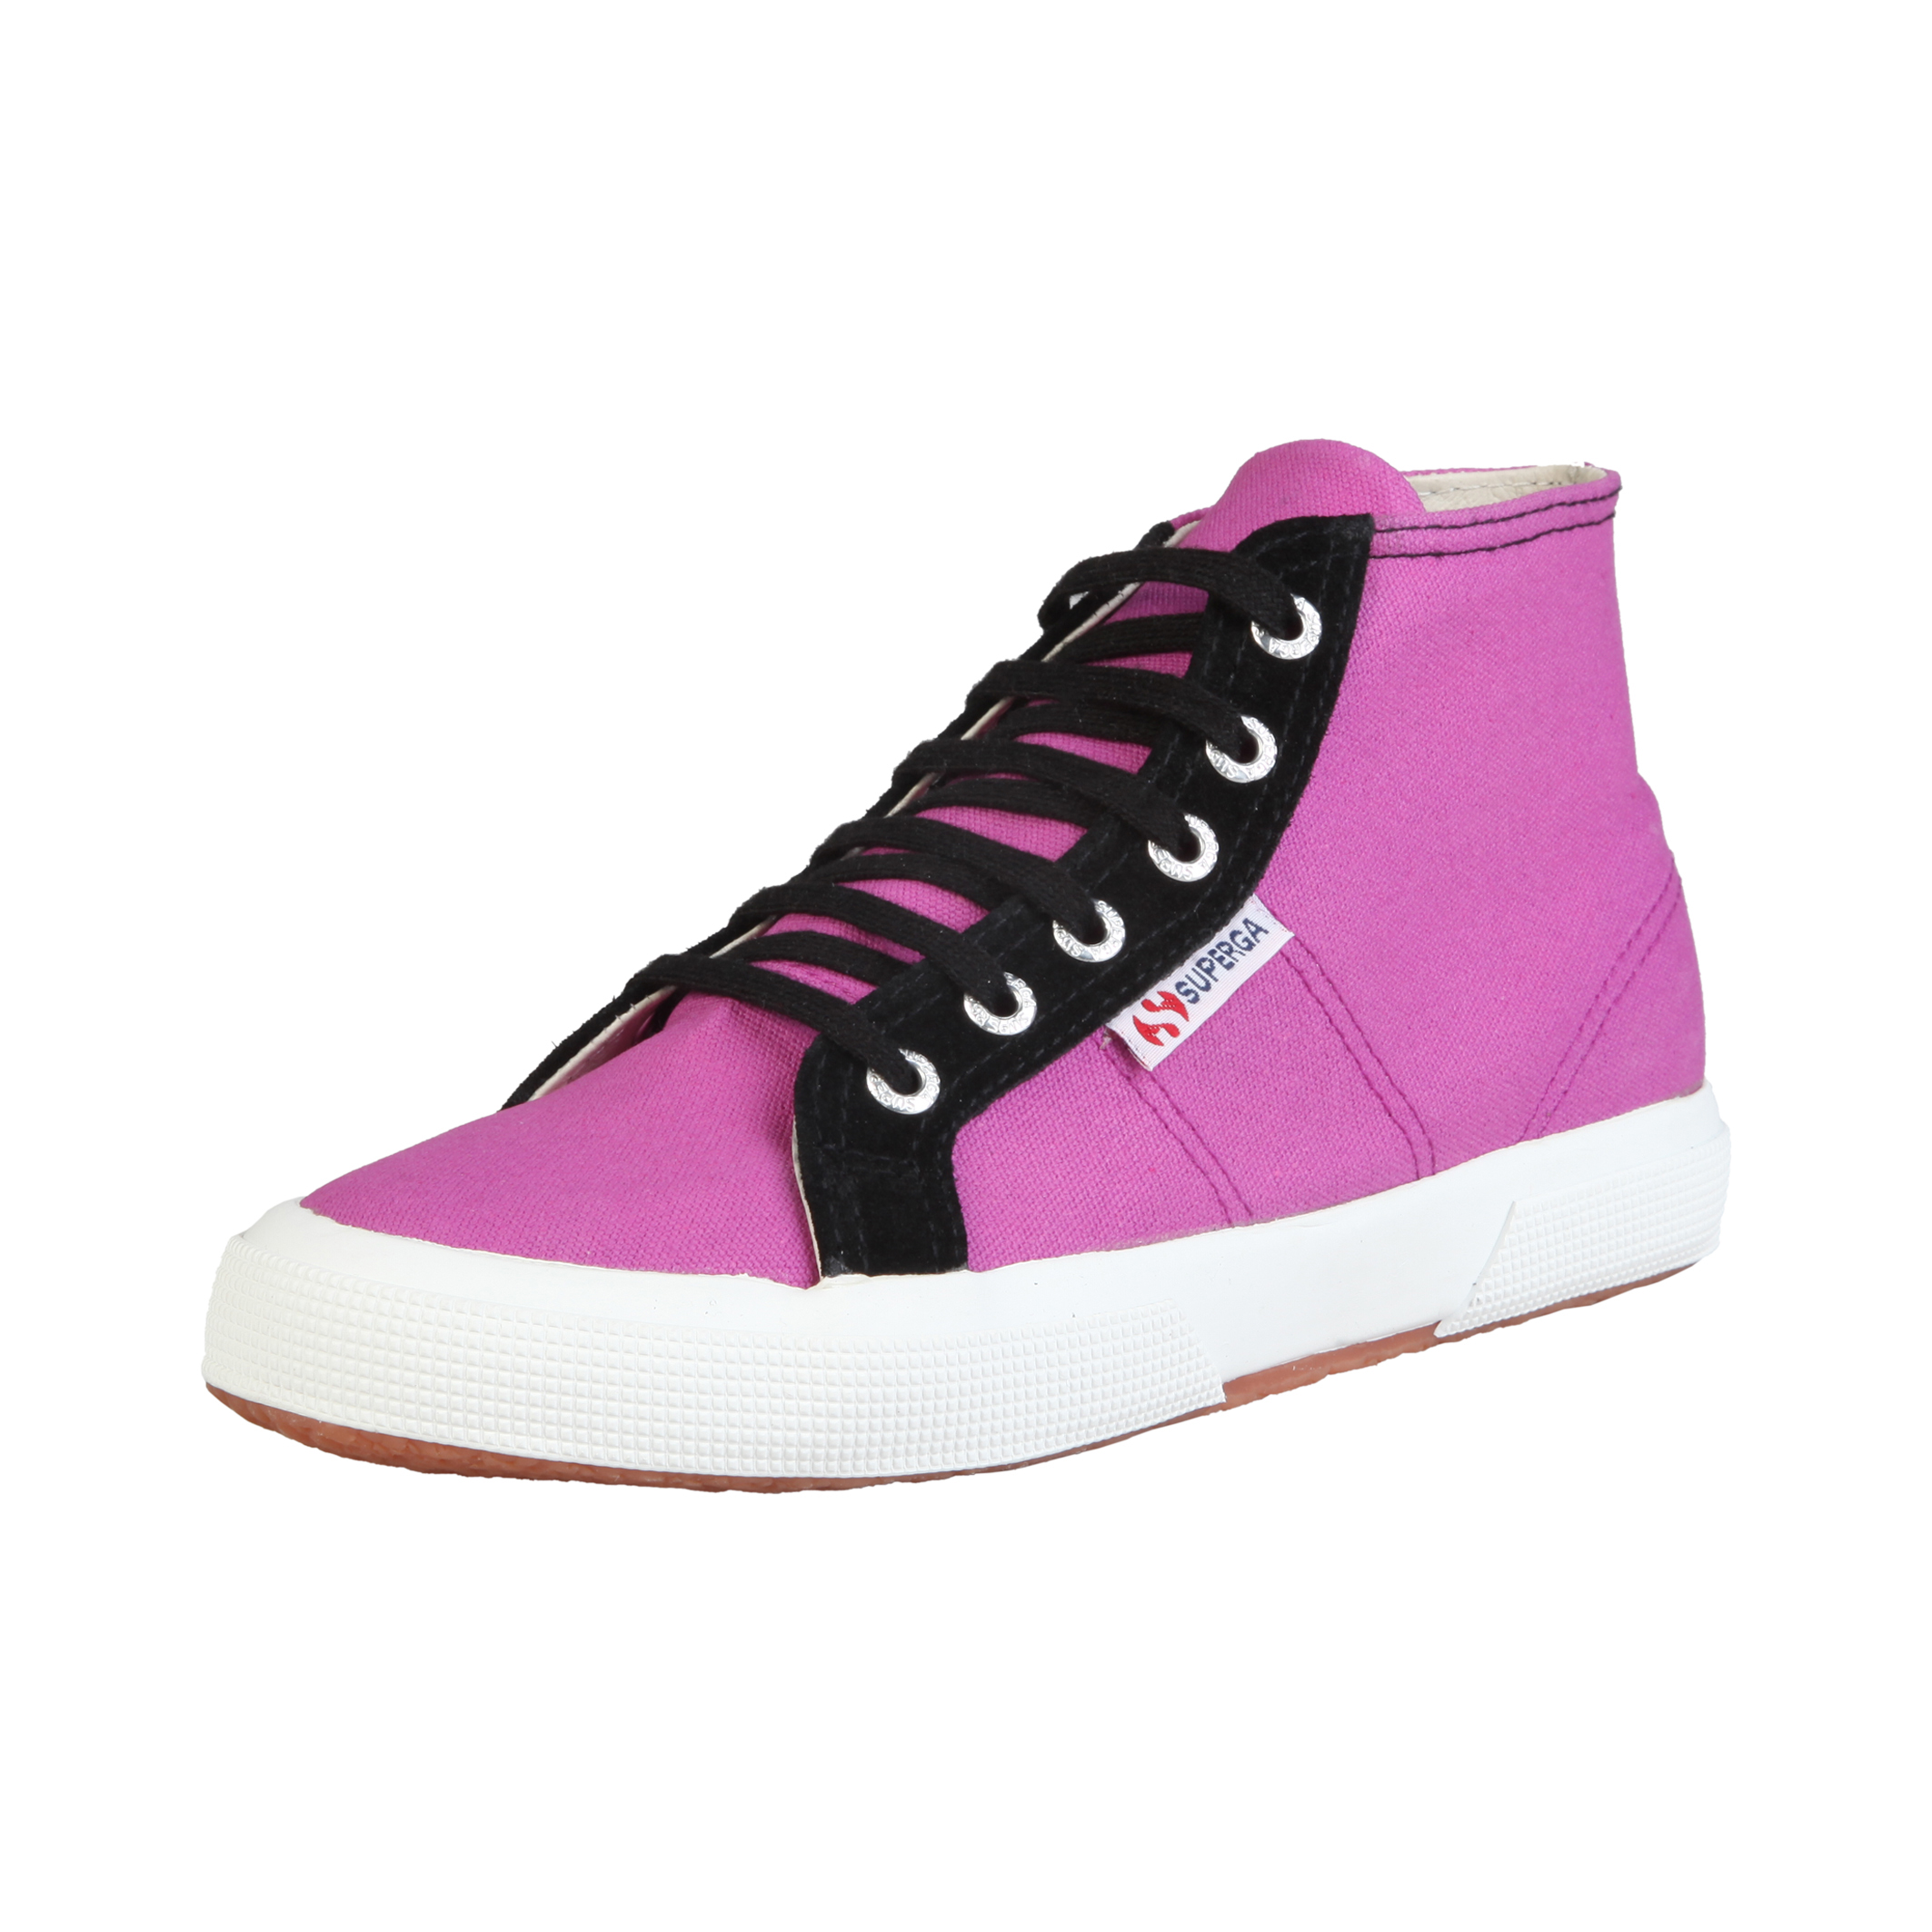 Chaussures   Superga S003T50_2095 pink